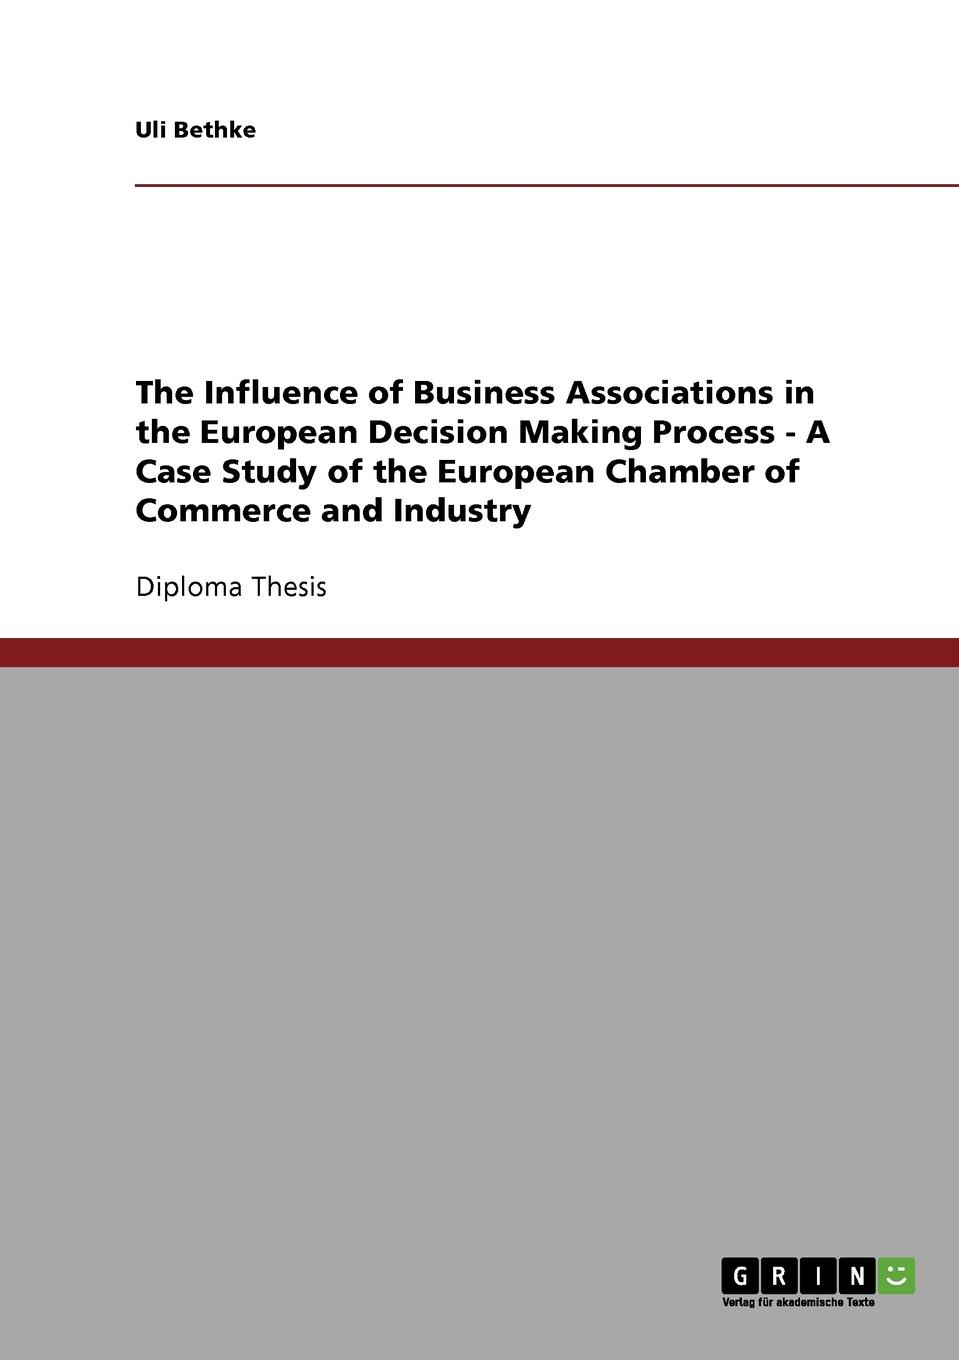 Uli Bethke The Influence of Business Associations in the European Decision Making Process - A Case Study of the European Chamber of Commerce and Industry negotiations and decision making in the european union teaching and learning through role play simulation games